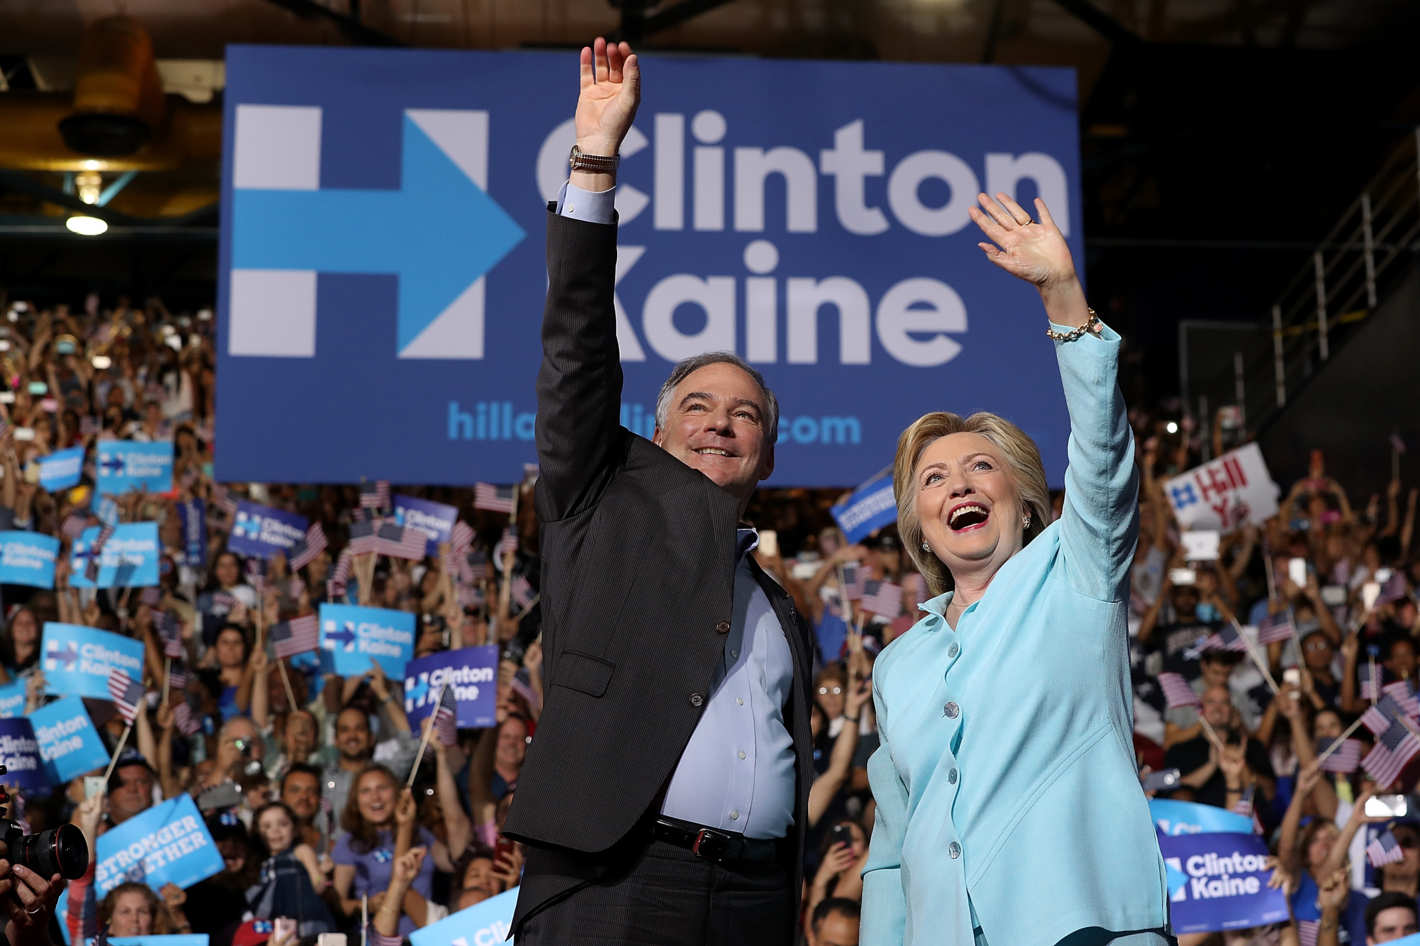 The 2016 Democratic PArty ticket. I guess it's better than the End of the World.